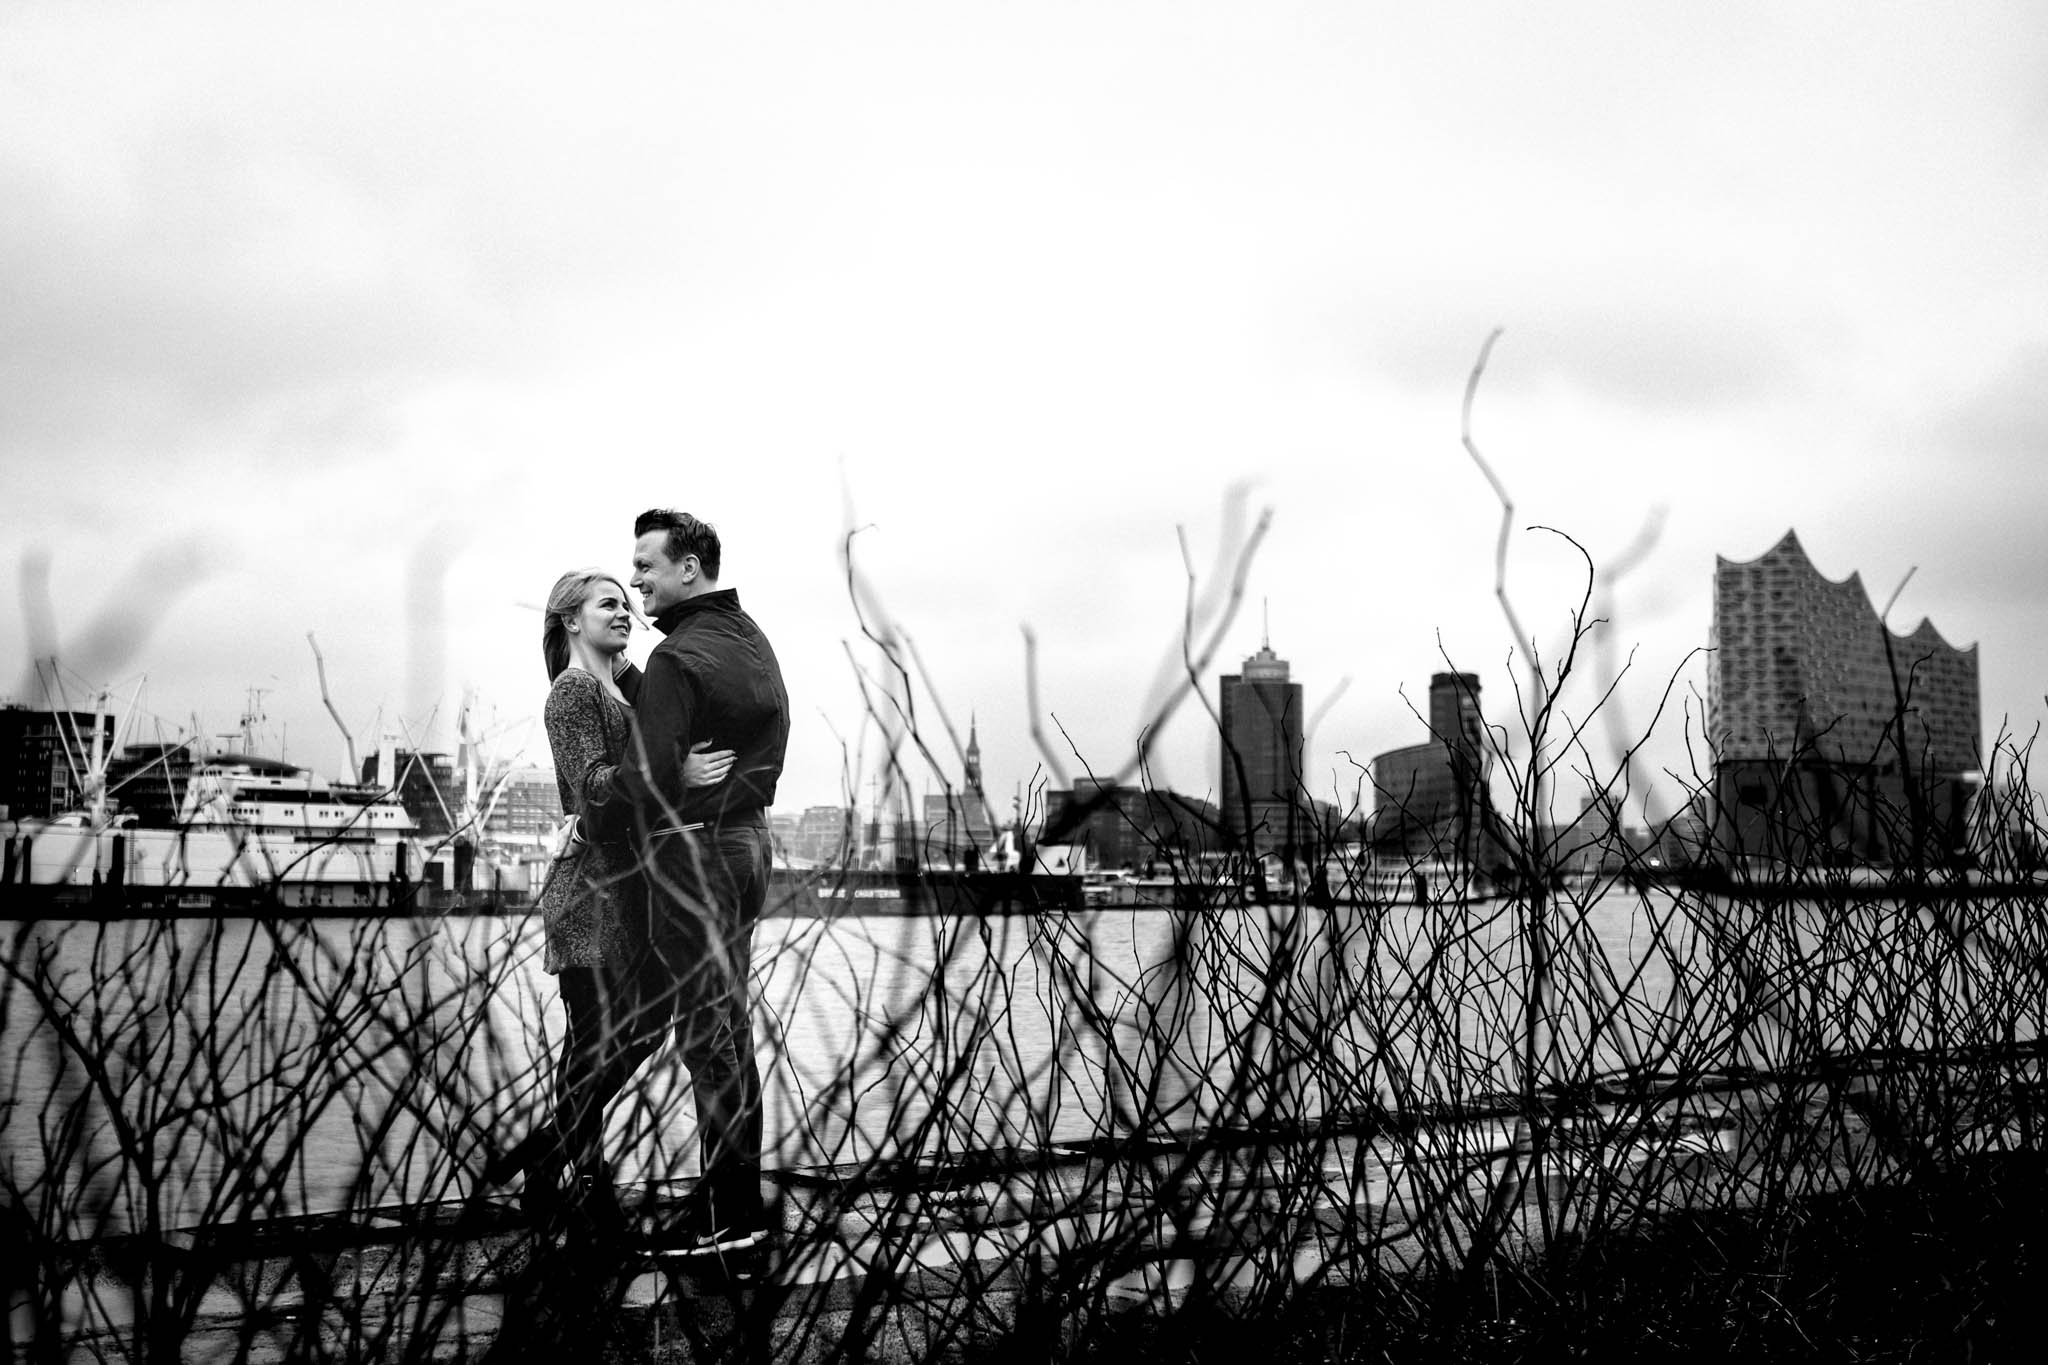 Engagementshooting, Hochzeitsfieber by Photo-Schomburg, Pärchenshoot, Hamburg, Elbe, Hamburger Hafen, Hochzeitsfotograf, Wedding, Coupleshoot, Hochzeitsfotografie-1